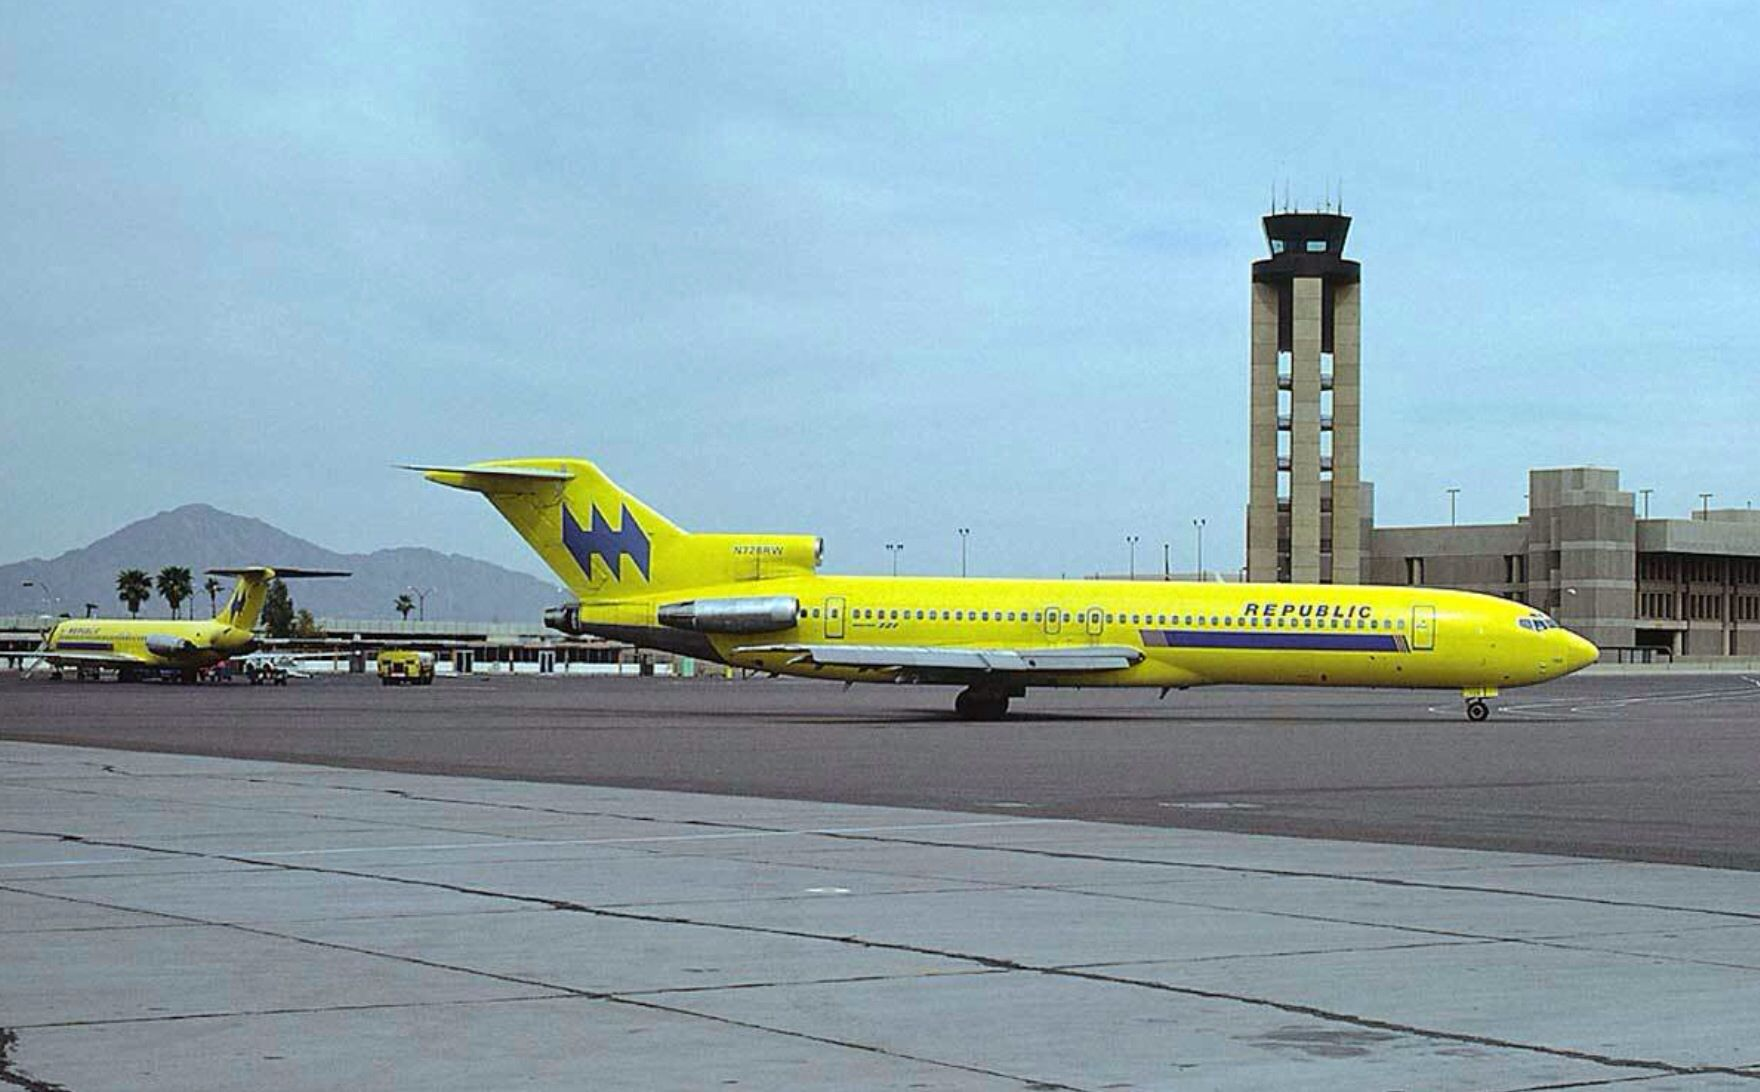 Republic 727 (With images) Boeing aircraft, Cargo